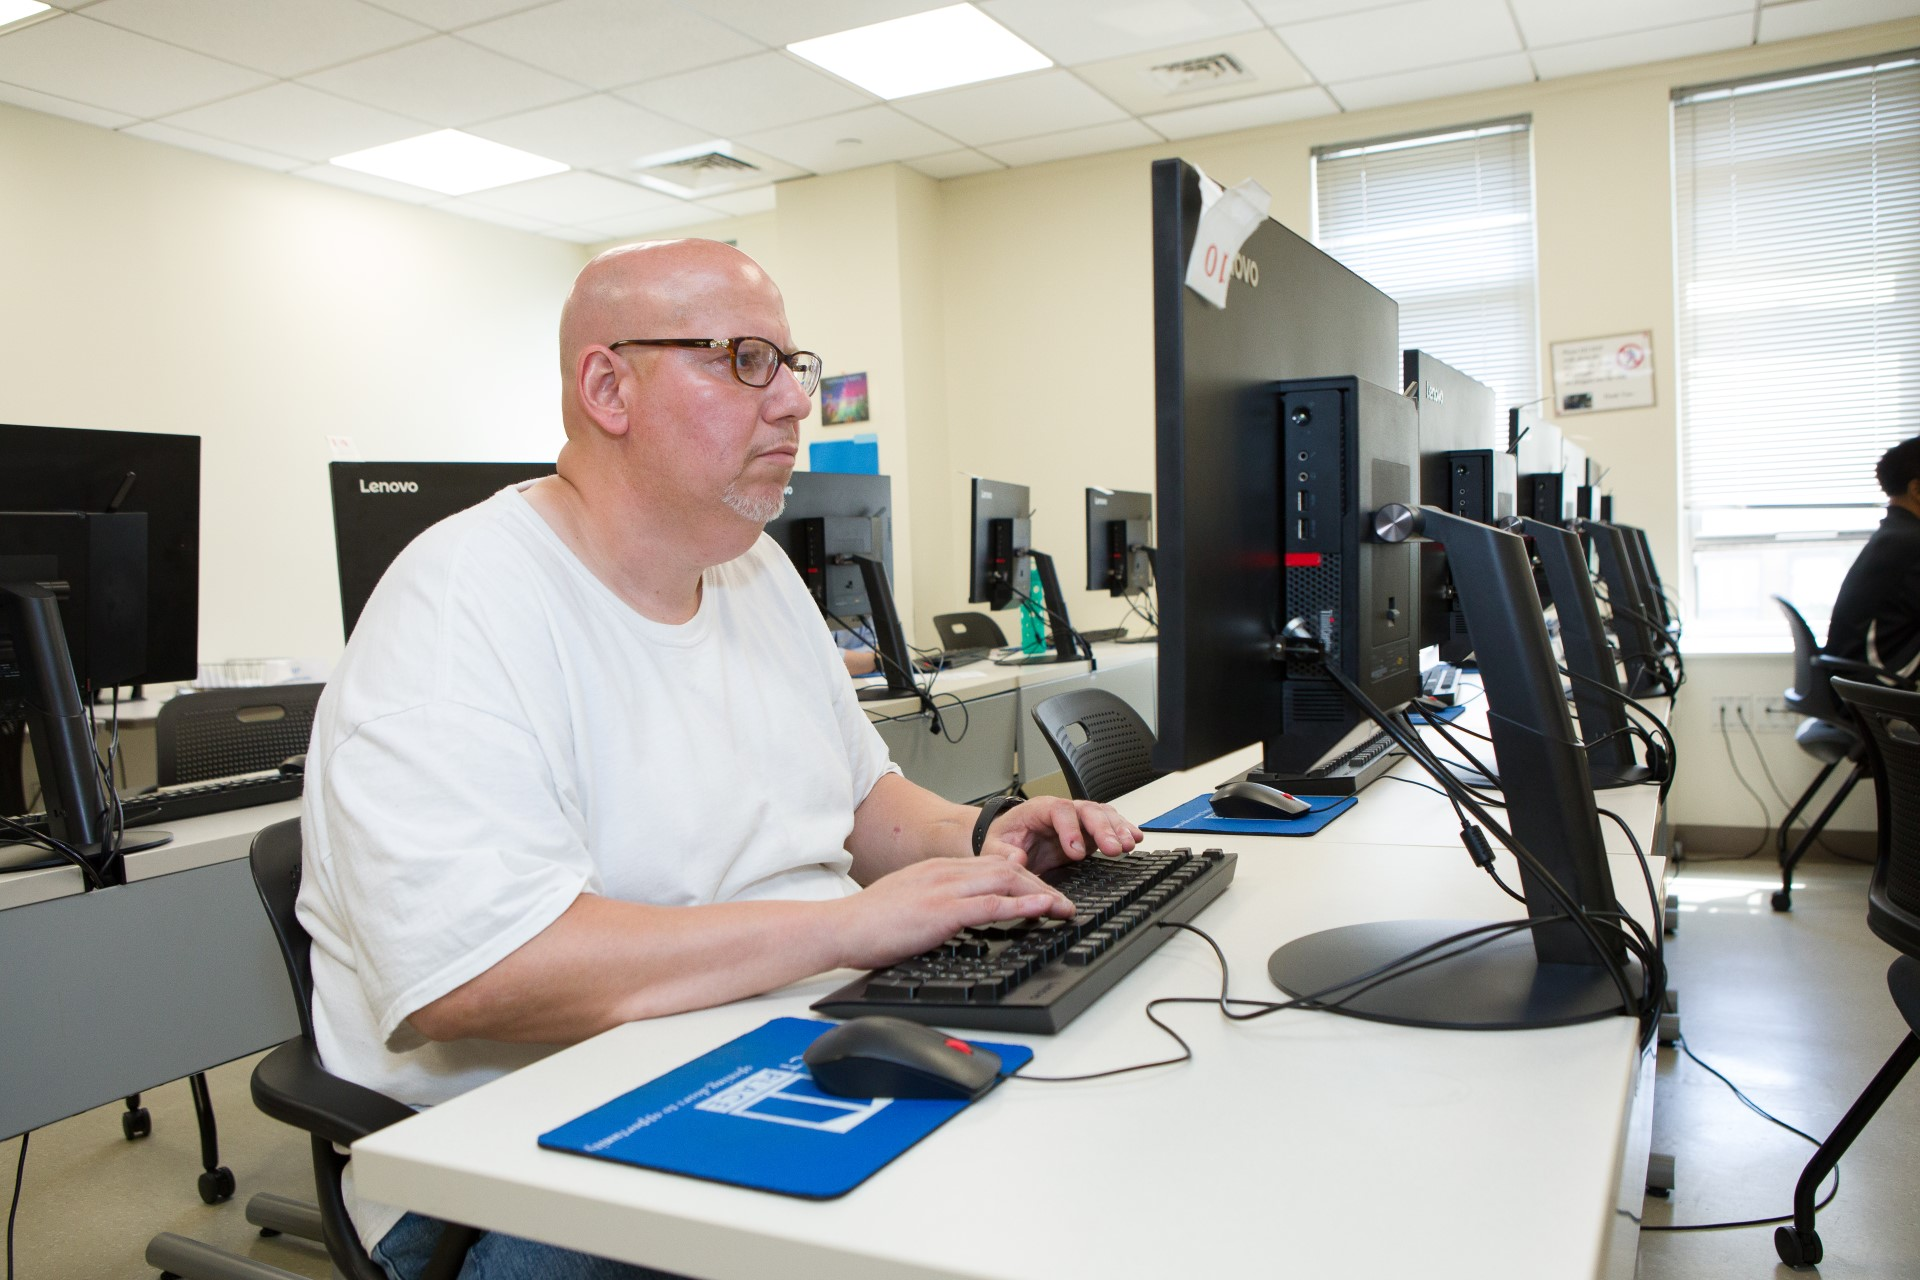 a client working in the computer lab